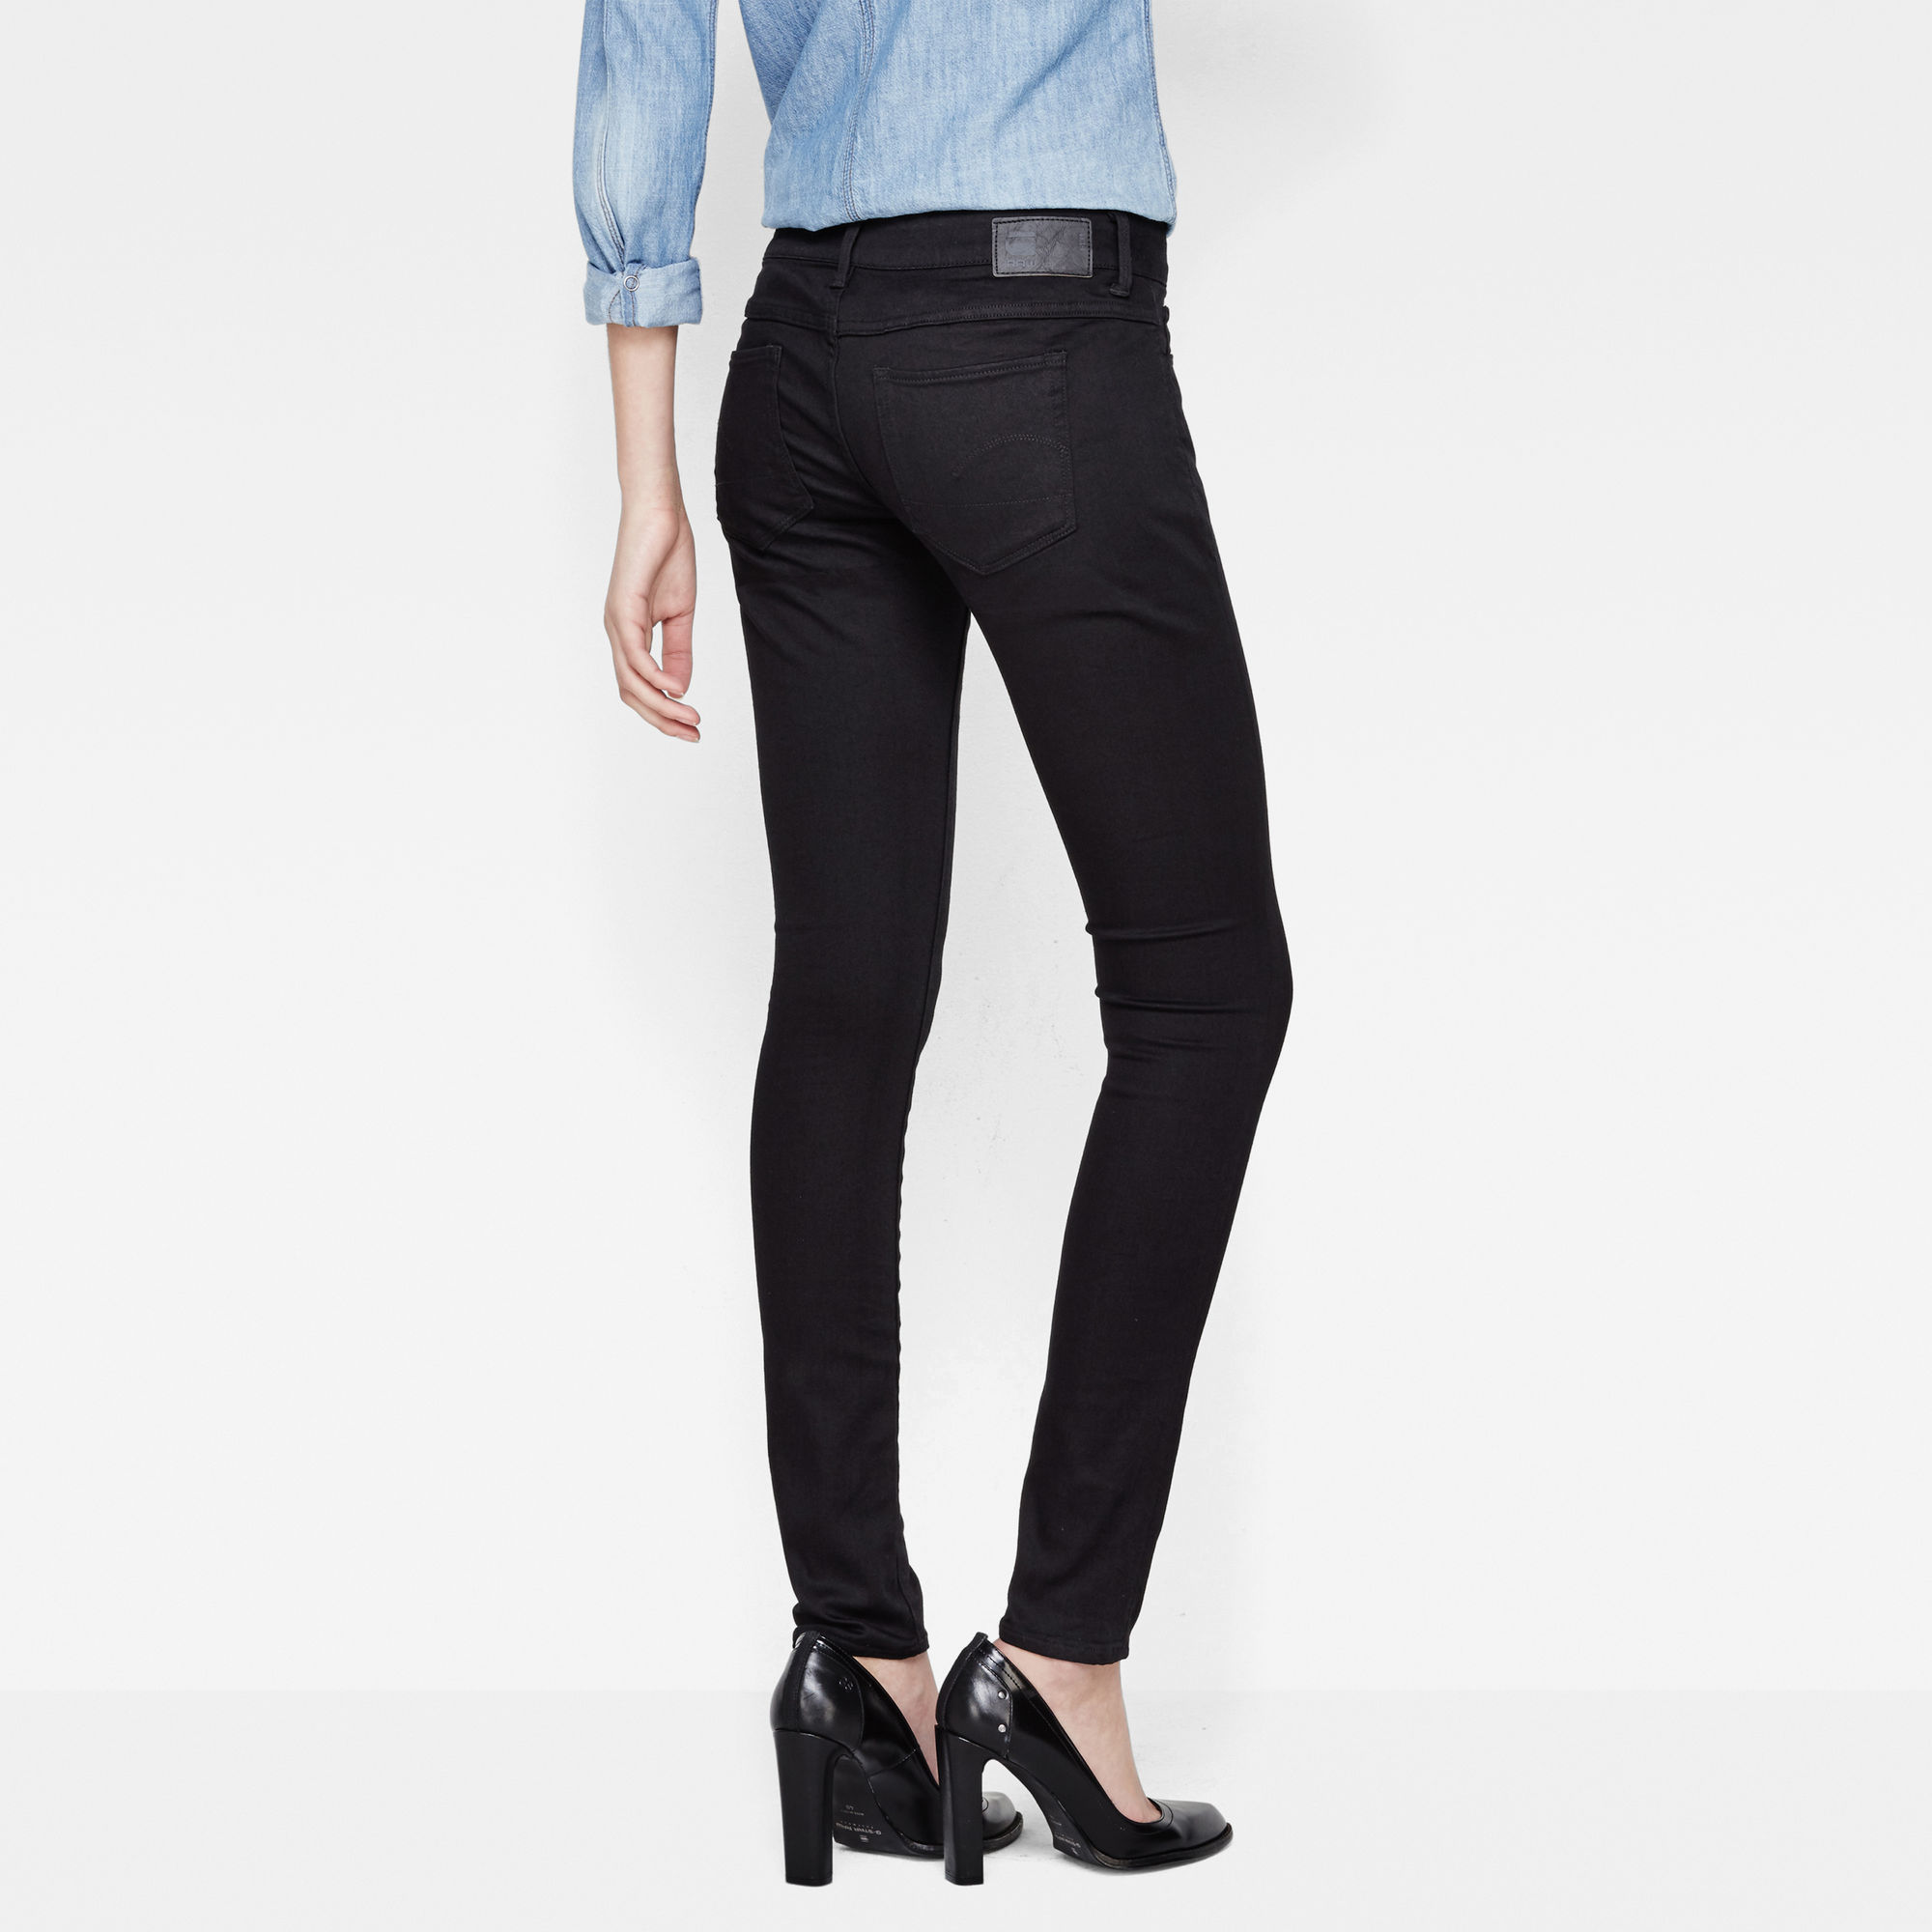 G-Star RAW 3301 Deconstructed Low Waist Super Skinny Jeans